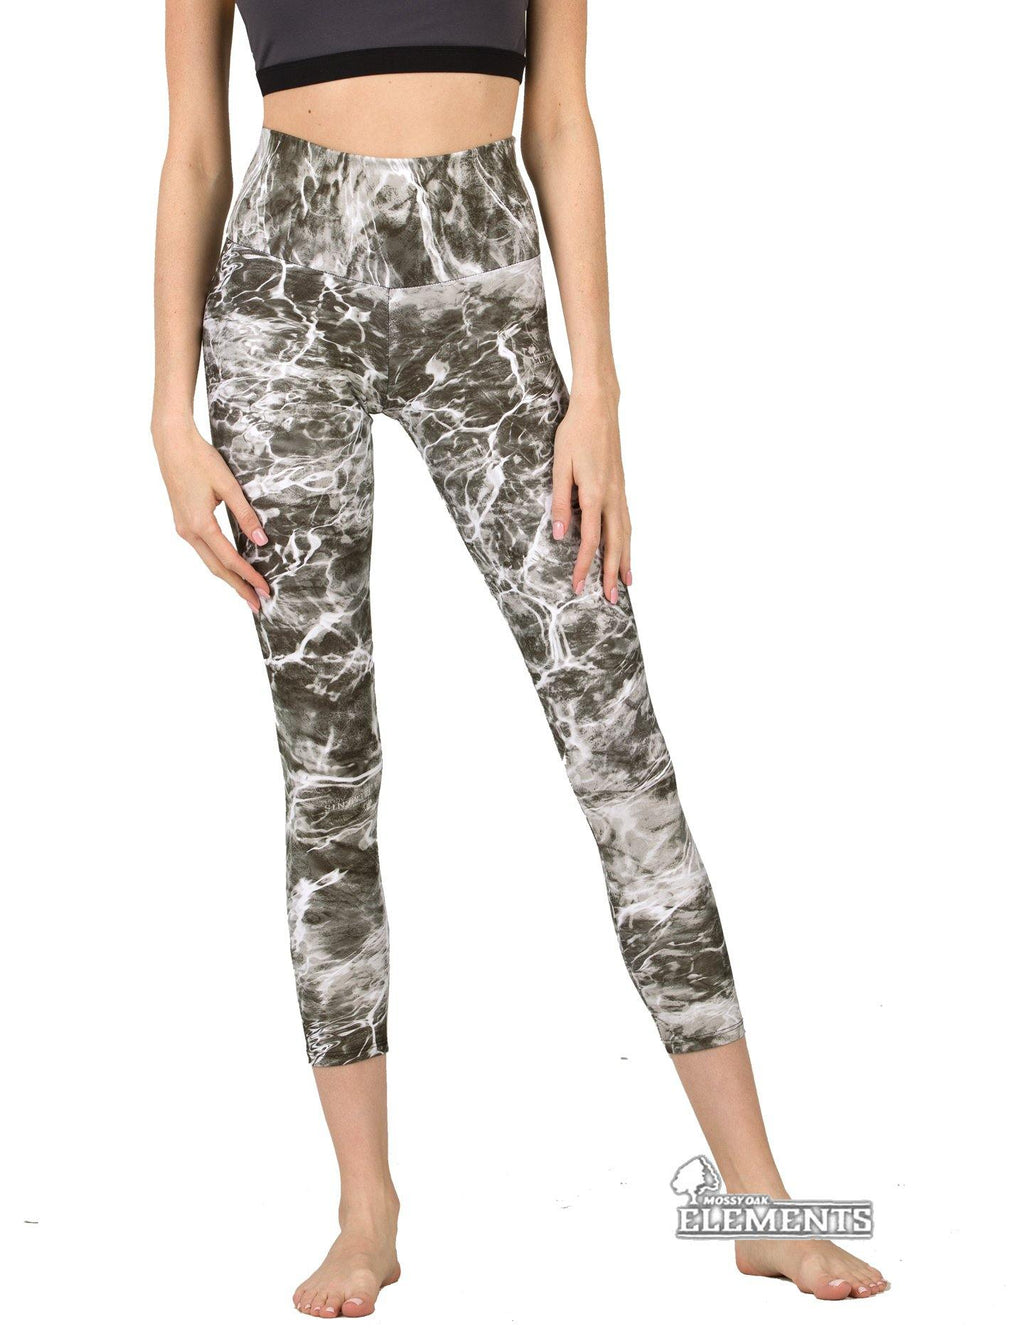 Apsara Leggings High Waist Cropped, Mossy Oak Elements Manta - Apsara Style